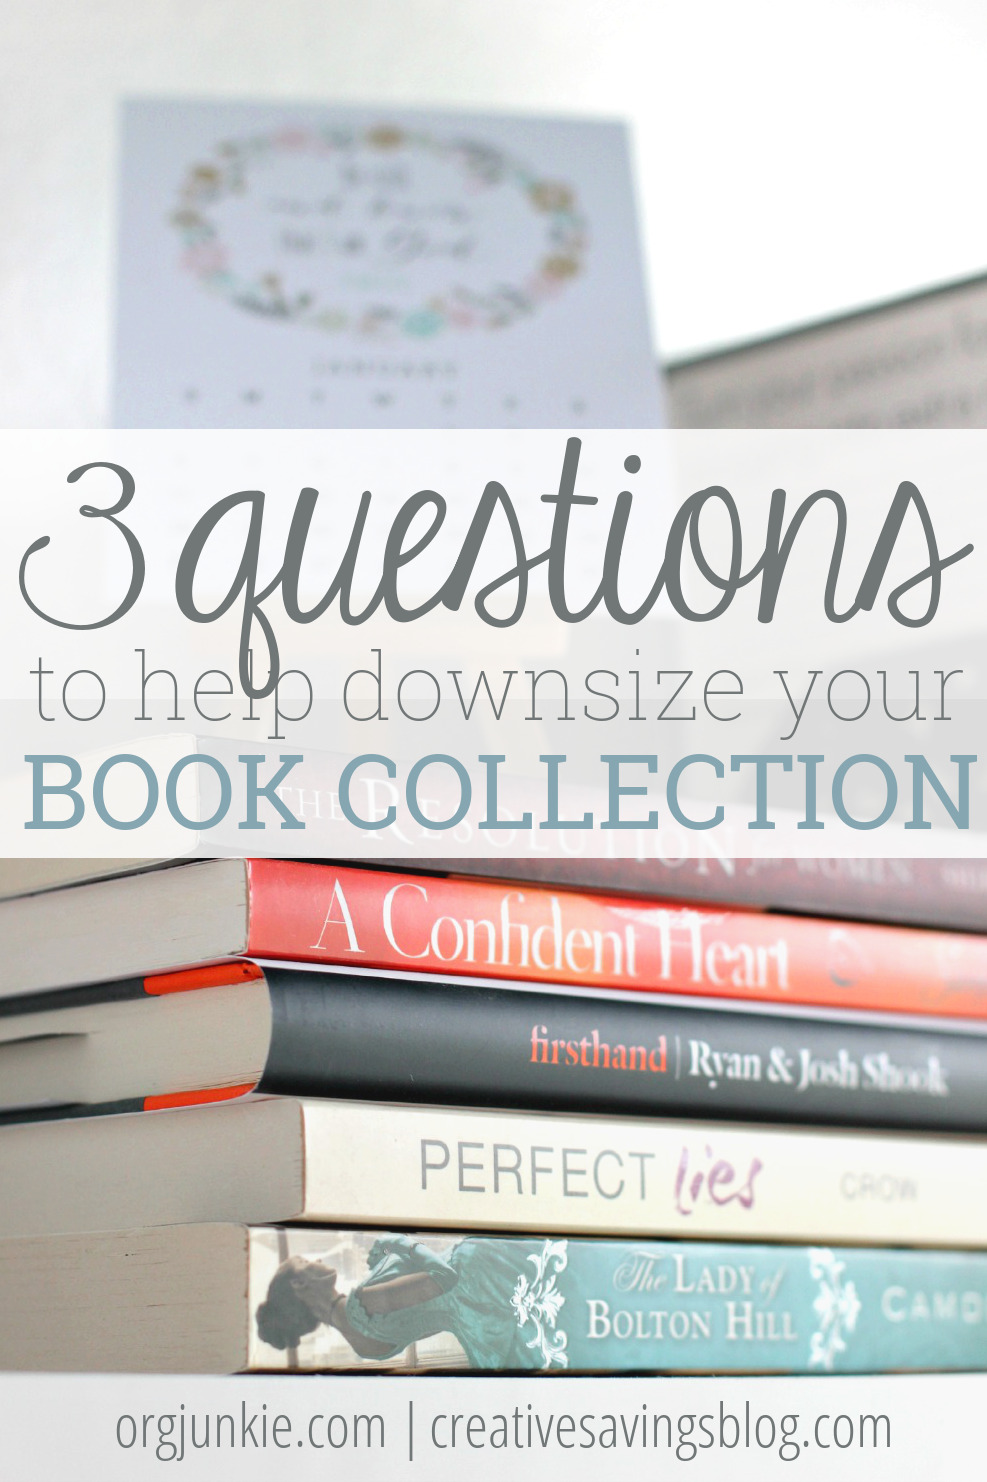 Love to collect books, but tired of the piles and clutter they create in your home? These 3 questions will help organize AND downsize your book collection, without sacrificing quality reads!